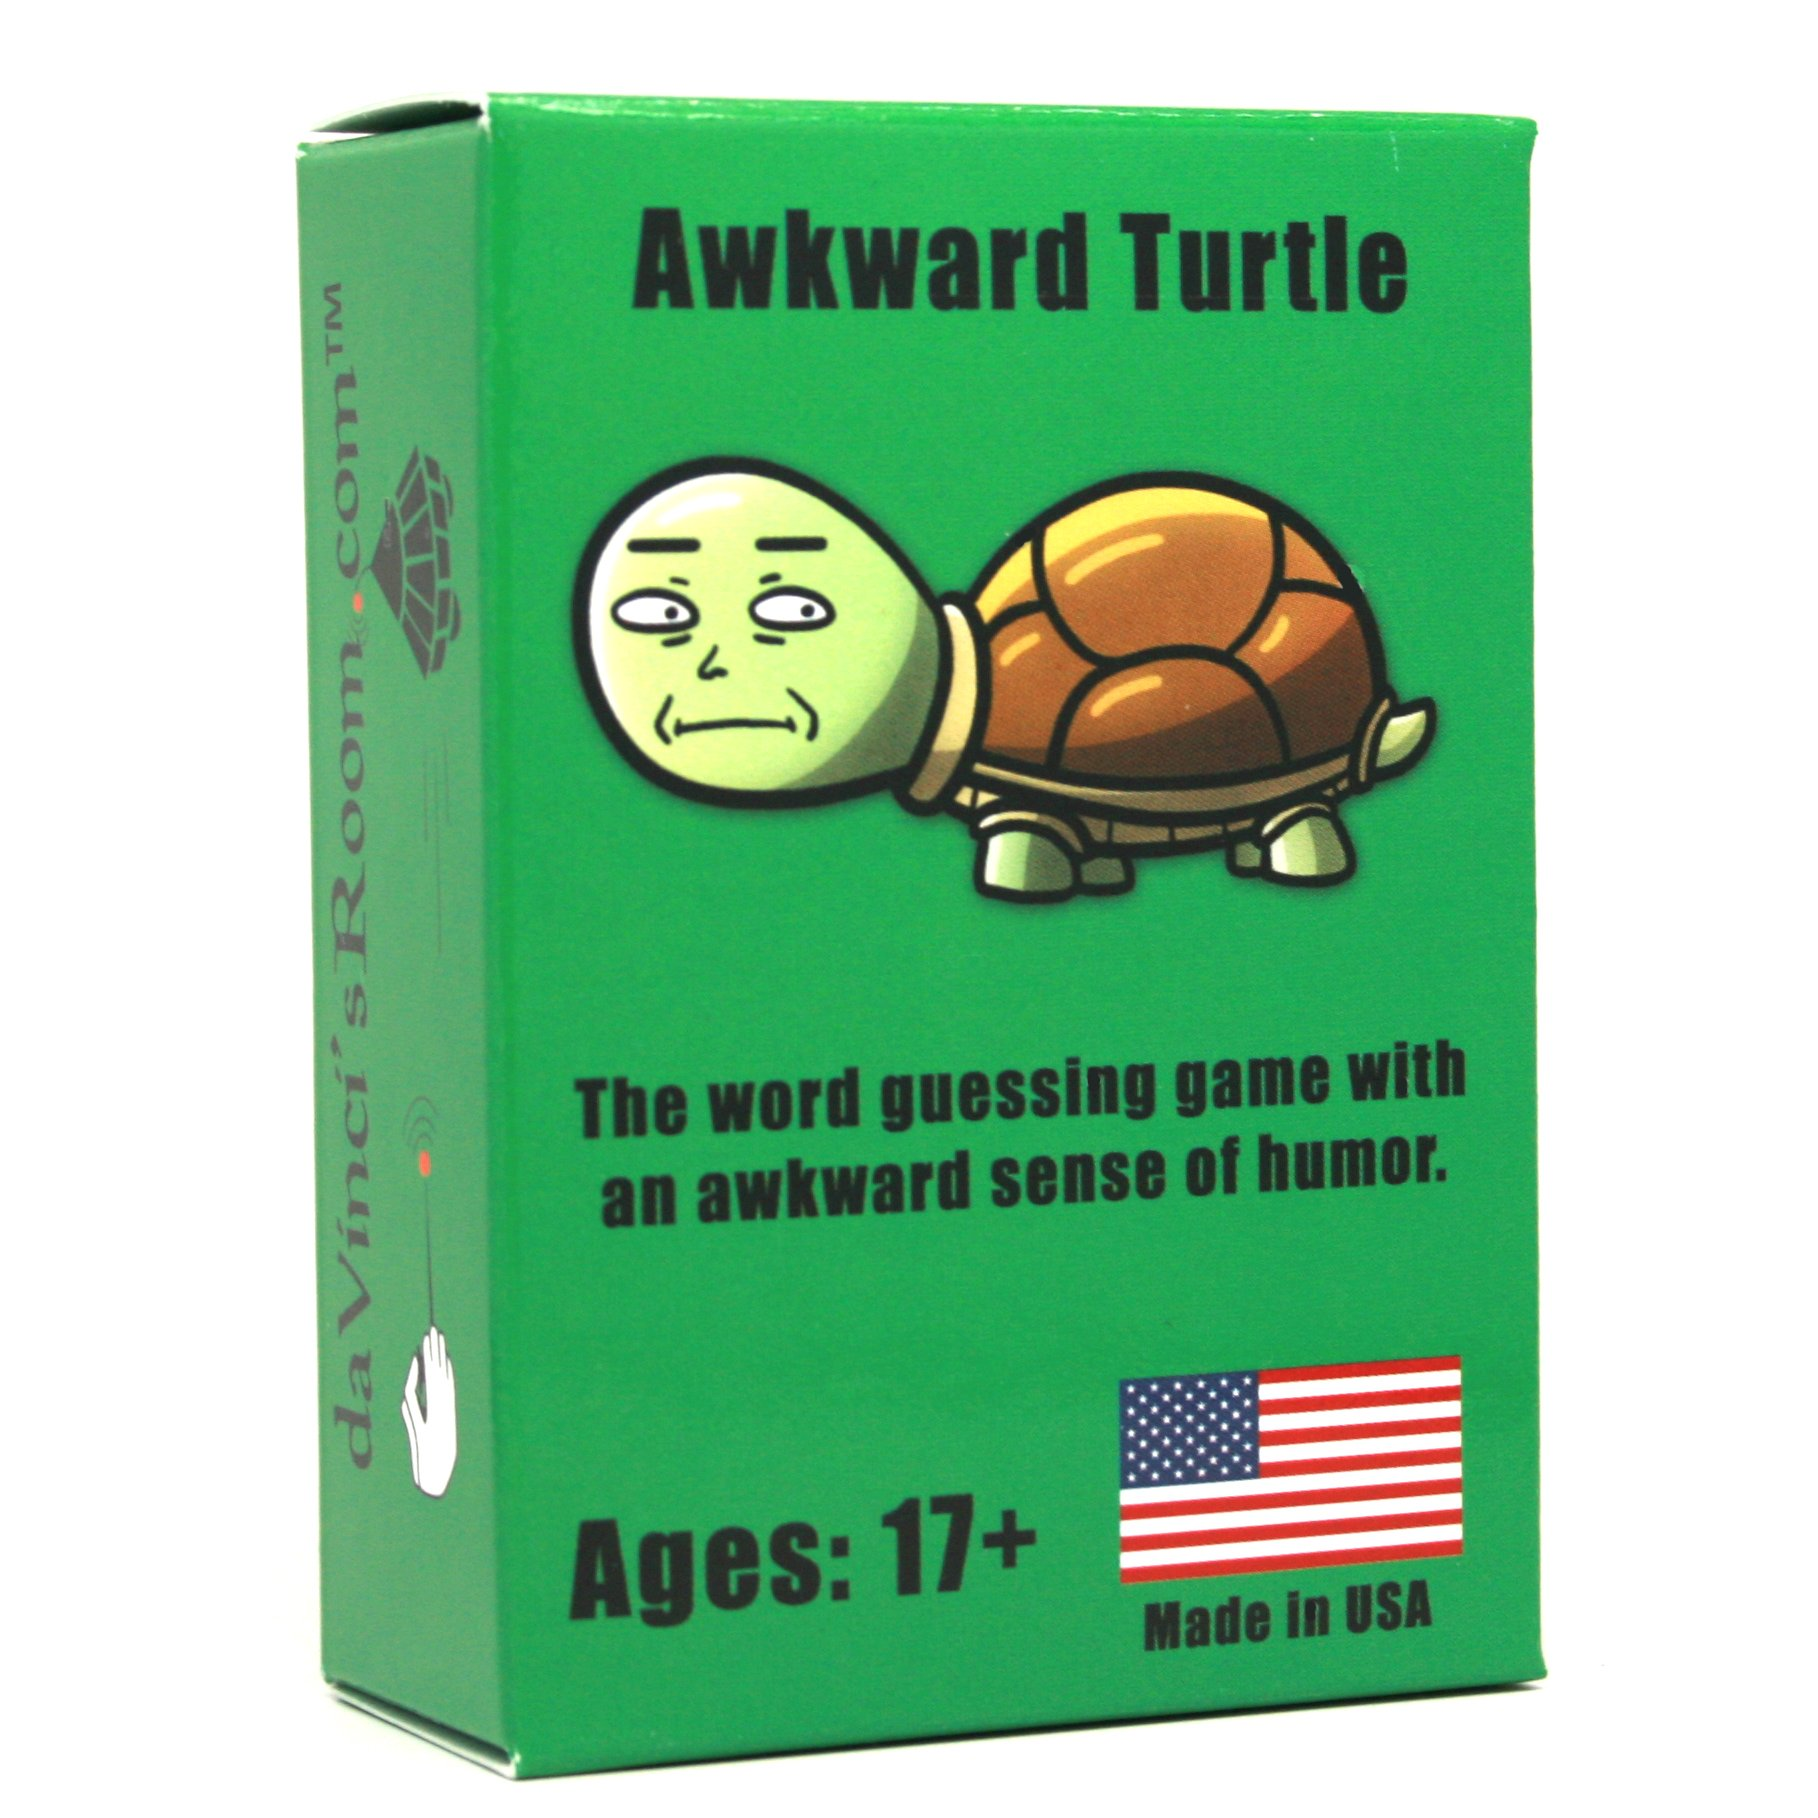 Buy Awkward Turtle Now!